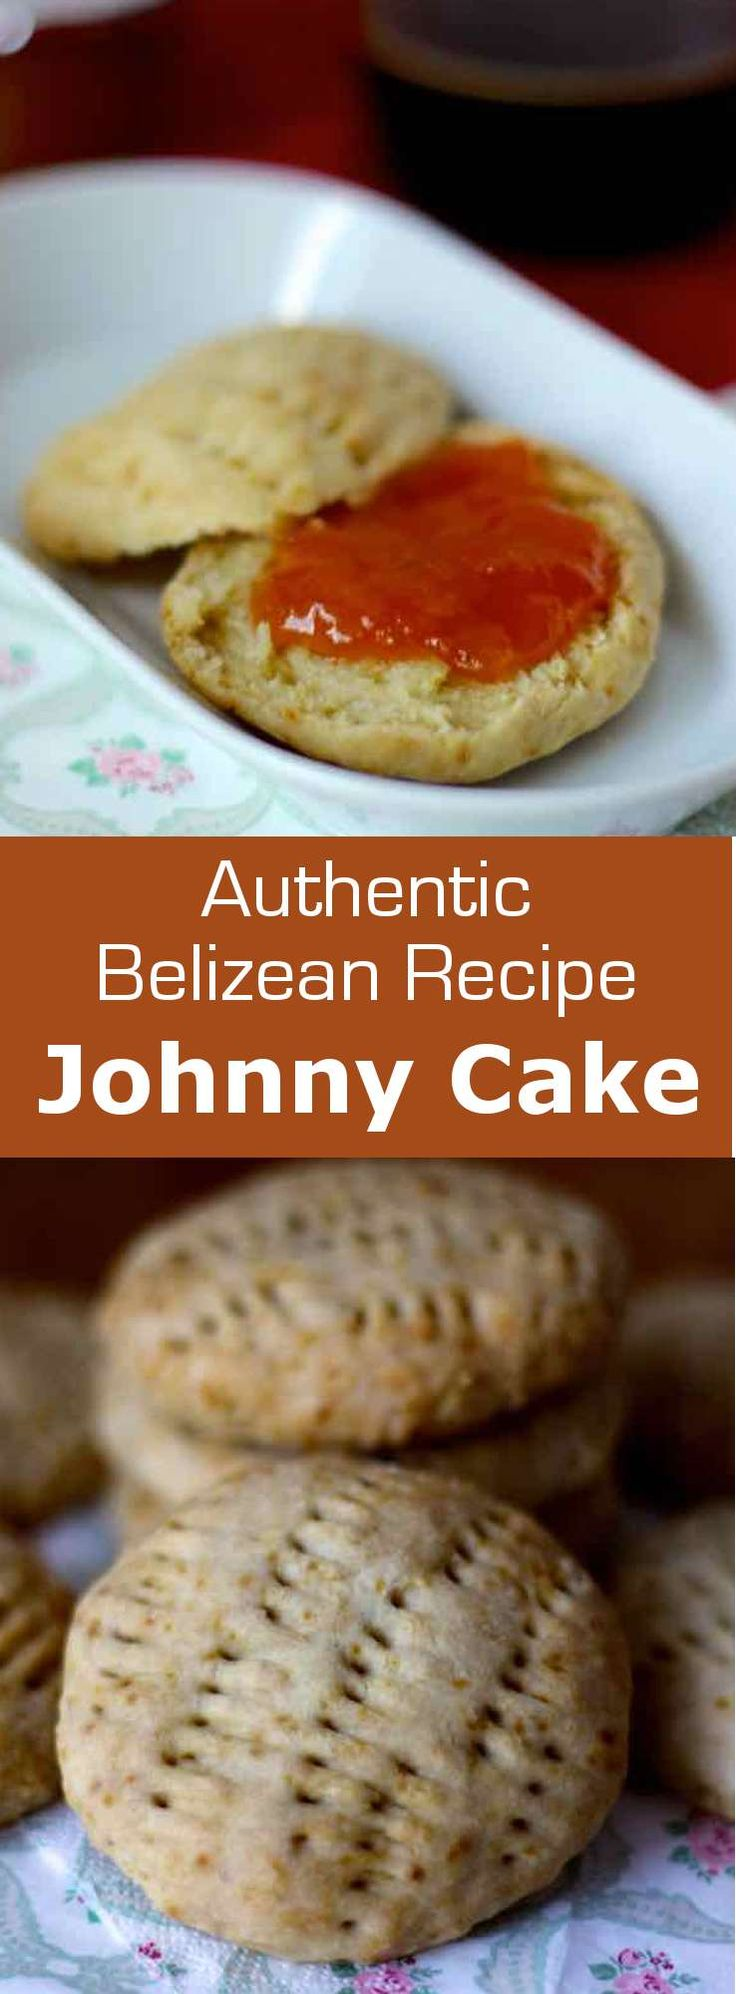 Johnny cake is to Belize what croissant is in France, the emblematic delicious soft roll of a traditional breakfast. #Belize #Caribbean #bread #196flavors